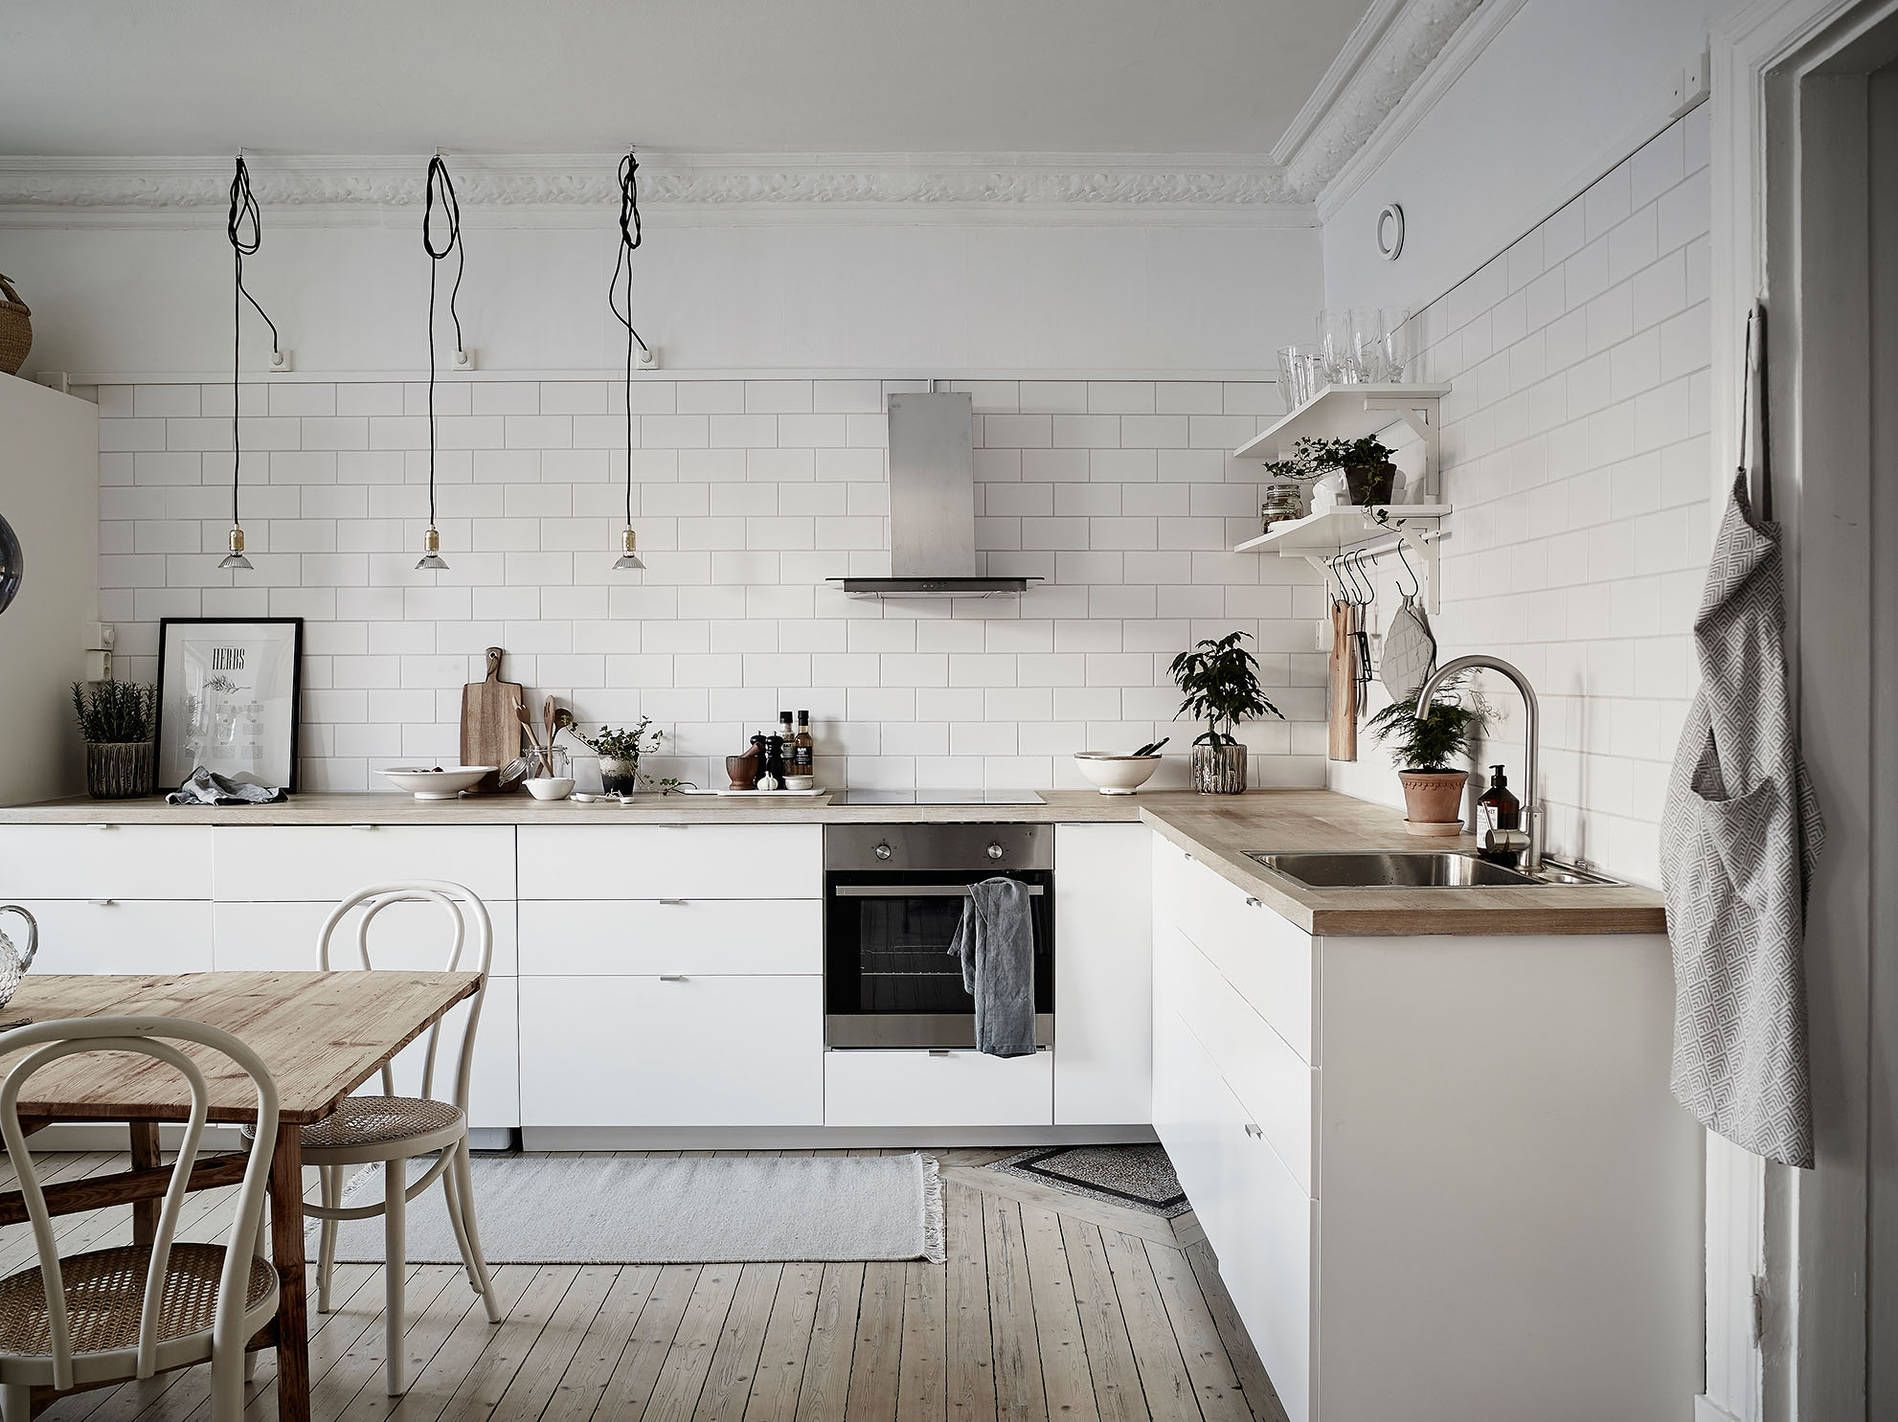 Old home with charm   homey   Pinterest   Kitchens, Interiors and Woods